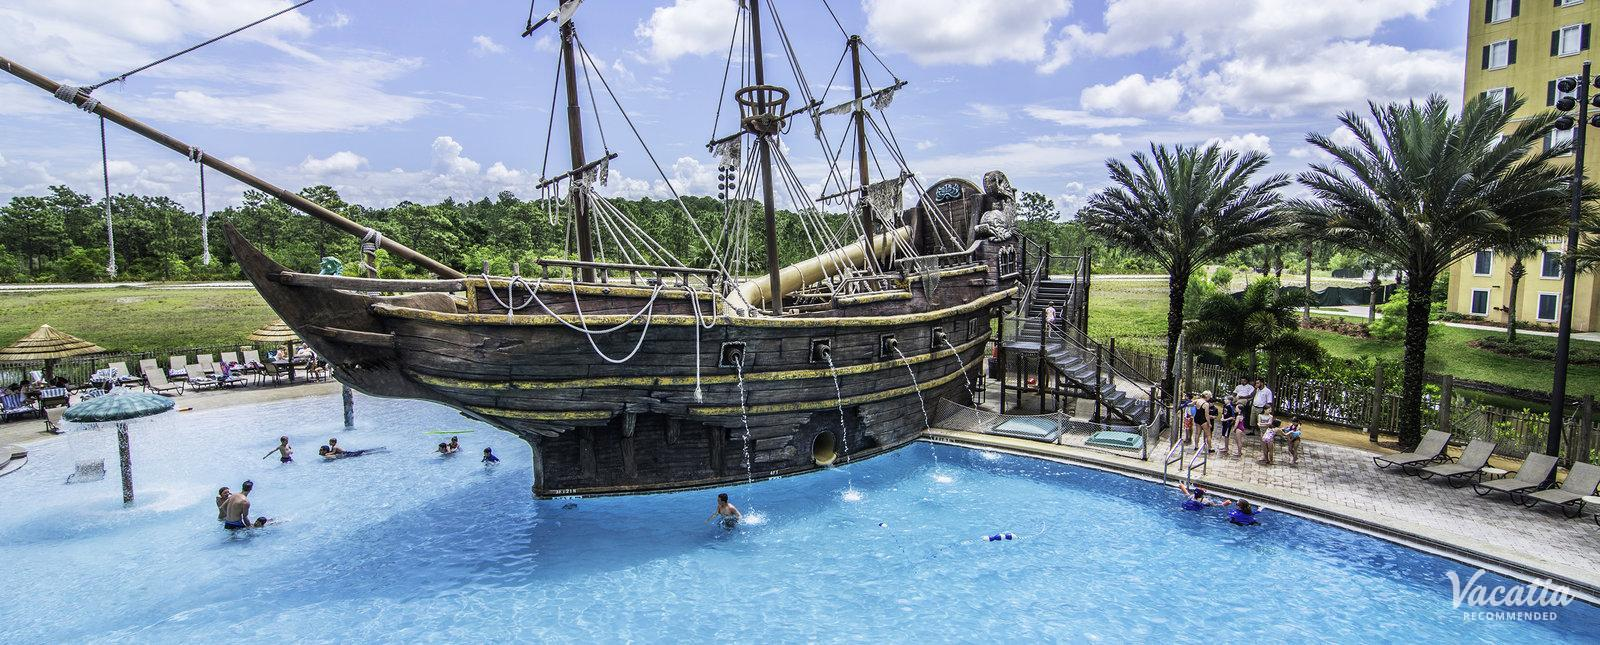 Lake Buena Vista Resort Pirate Ship